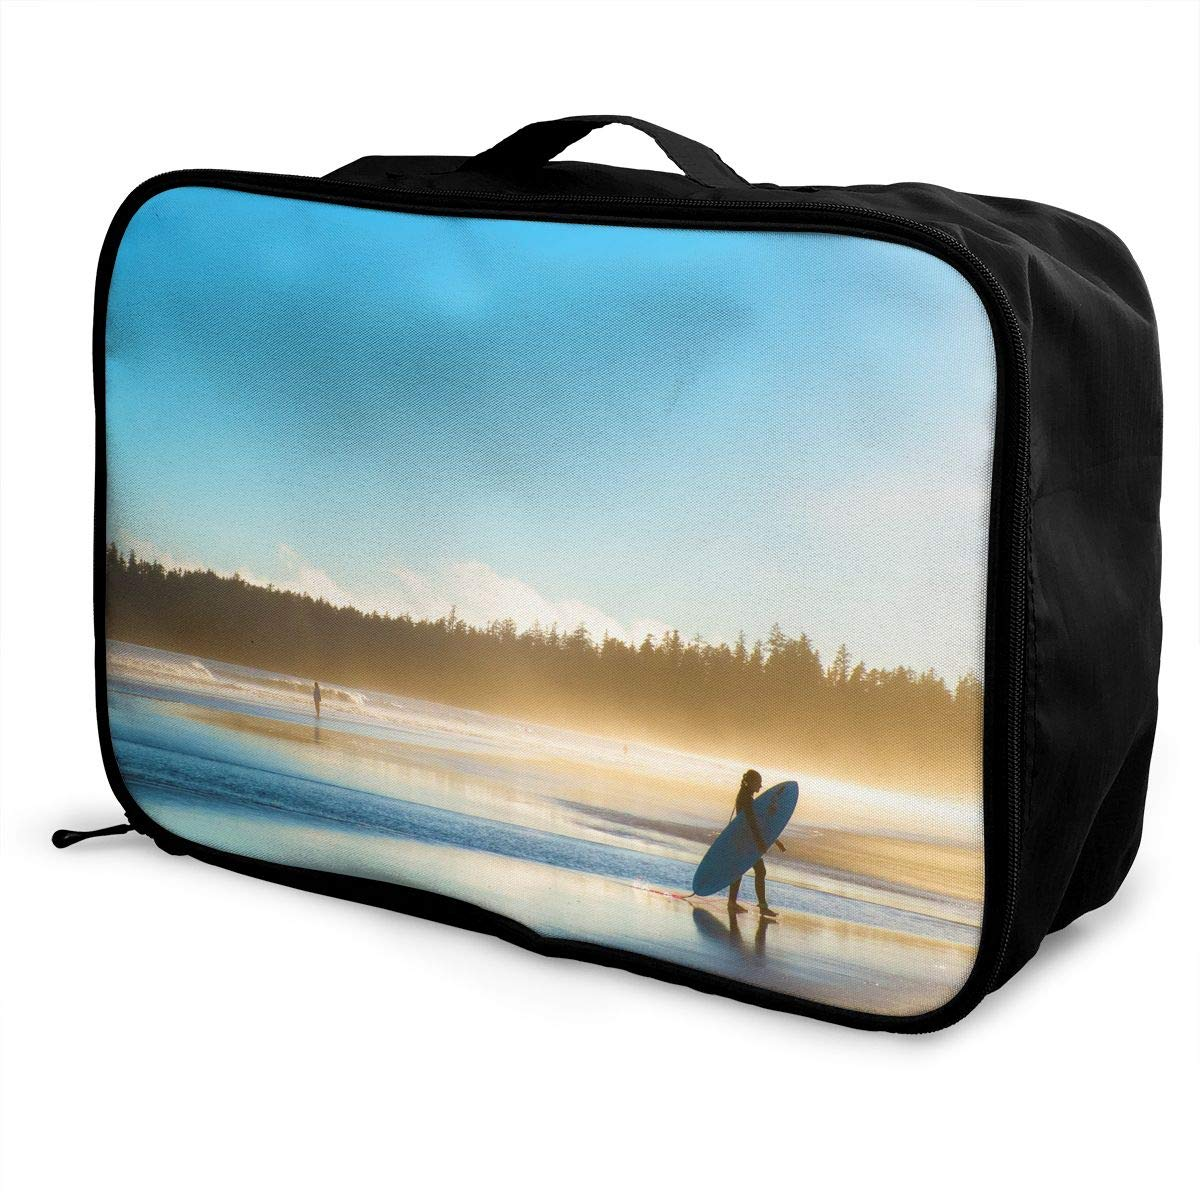 Travel Luggage Duffle Bag Lightweight Portable Handbag Surfing Large Capacity Waterproof Foldable Storage Tote